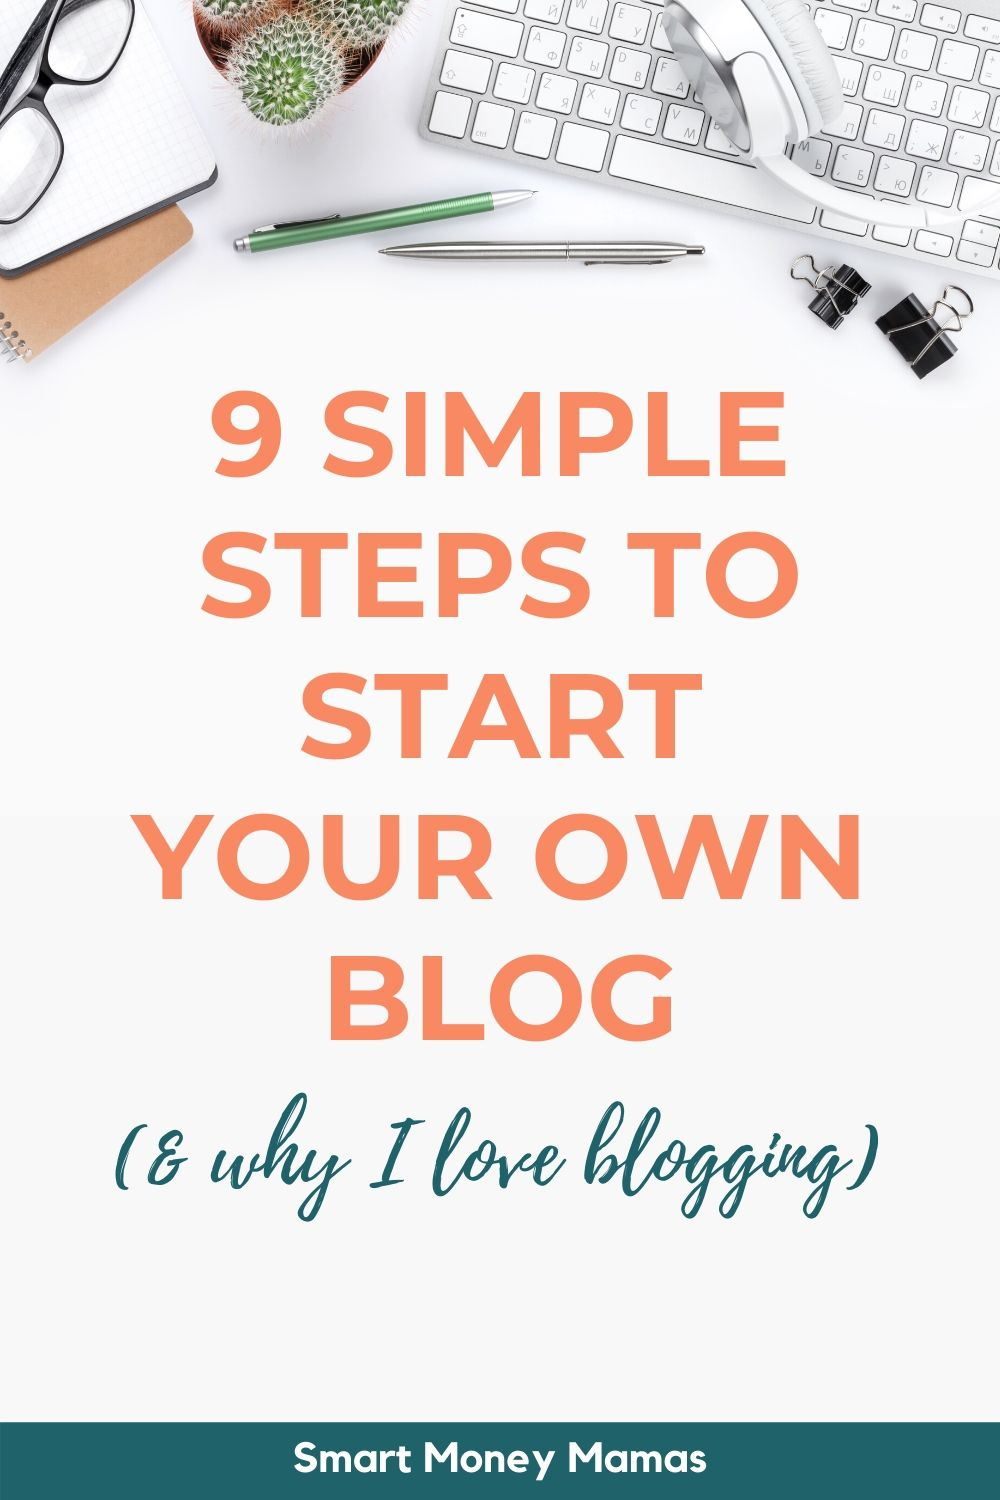 9 Simple Steps to Start Your Own Blog (& Why I Love Blogging)